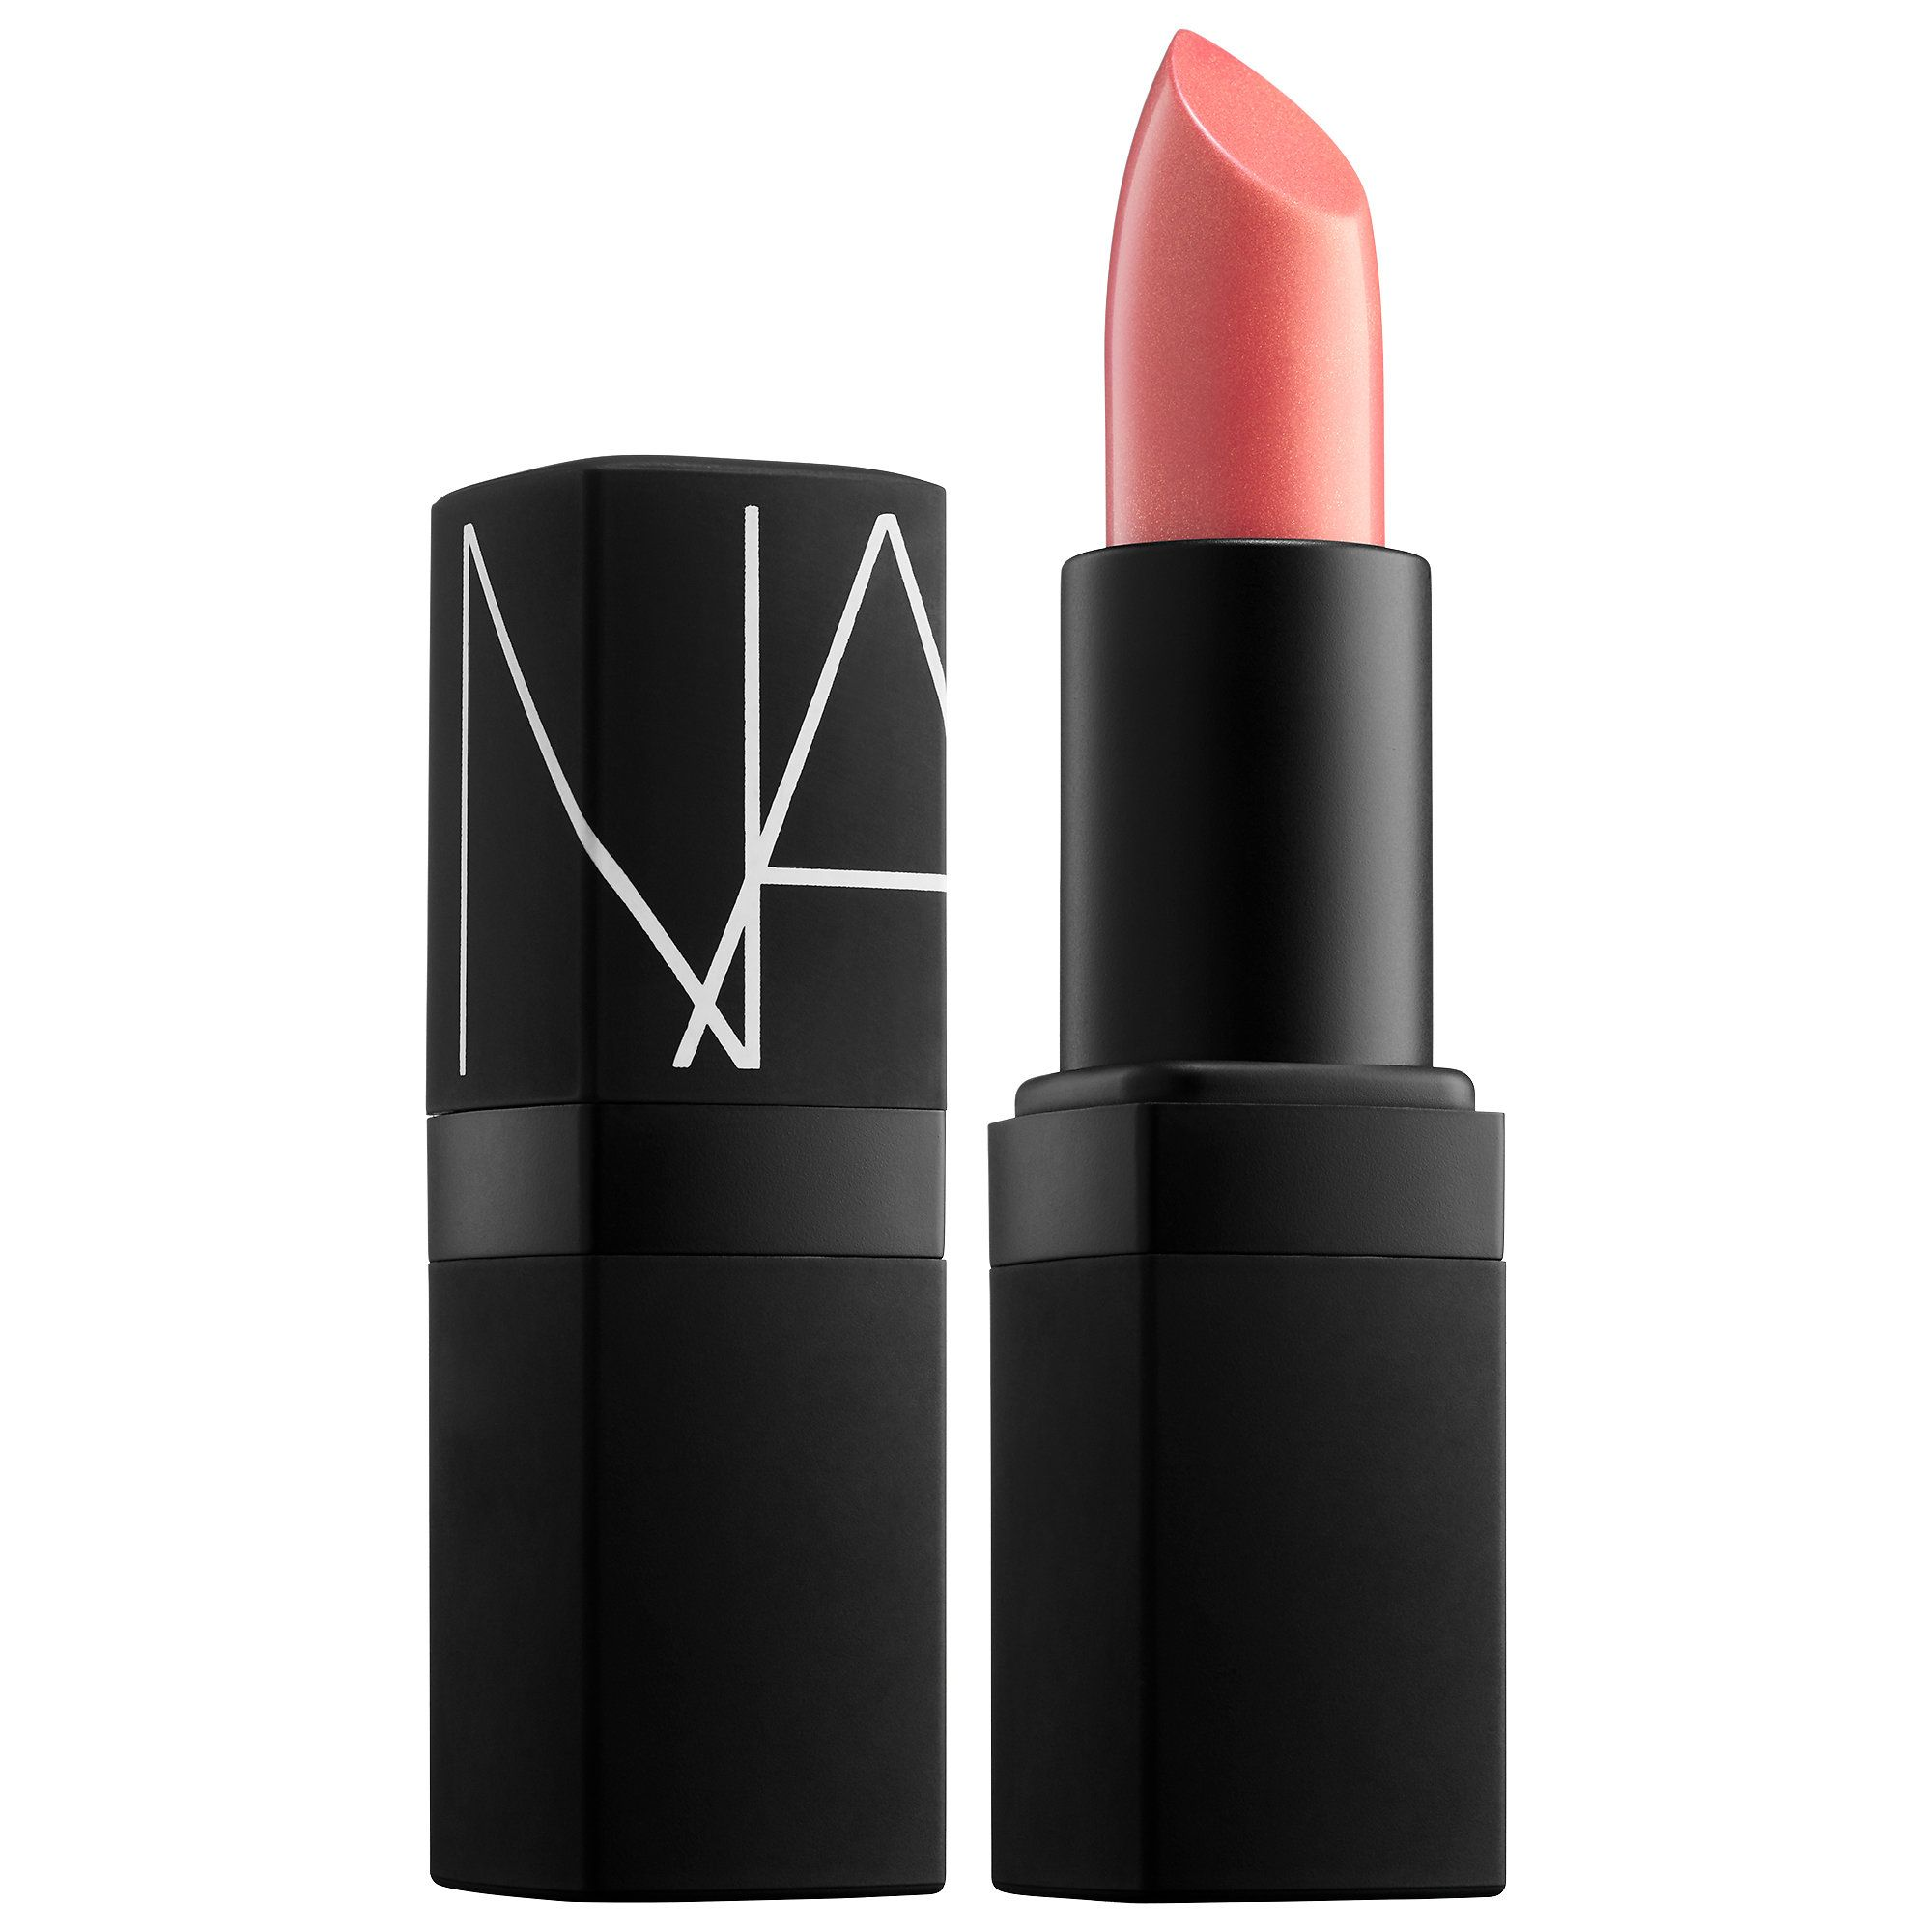 What it isA pure, creamy lipstick formula for bold color